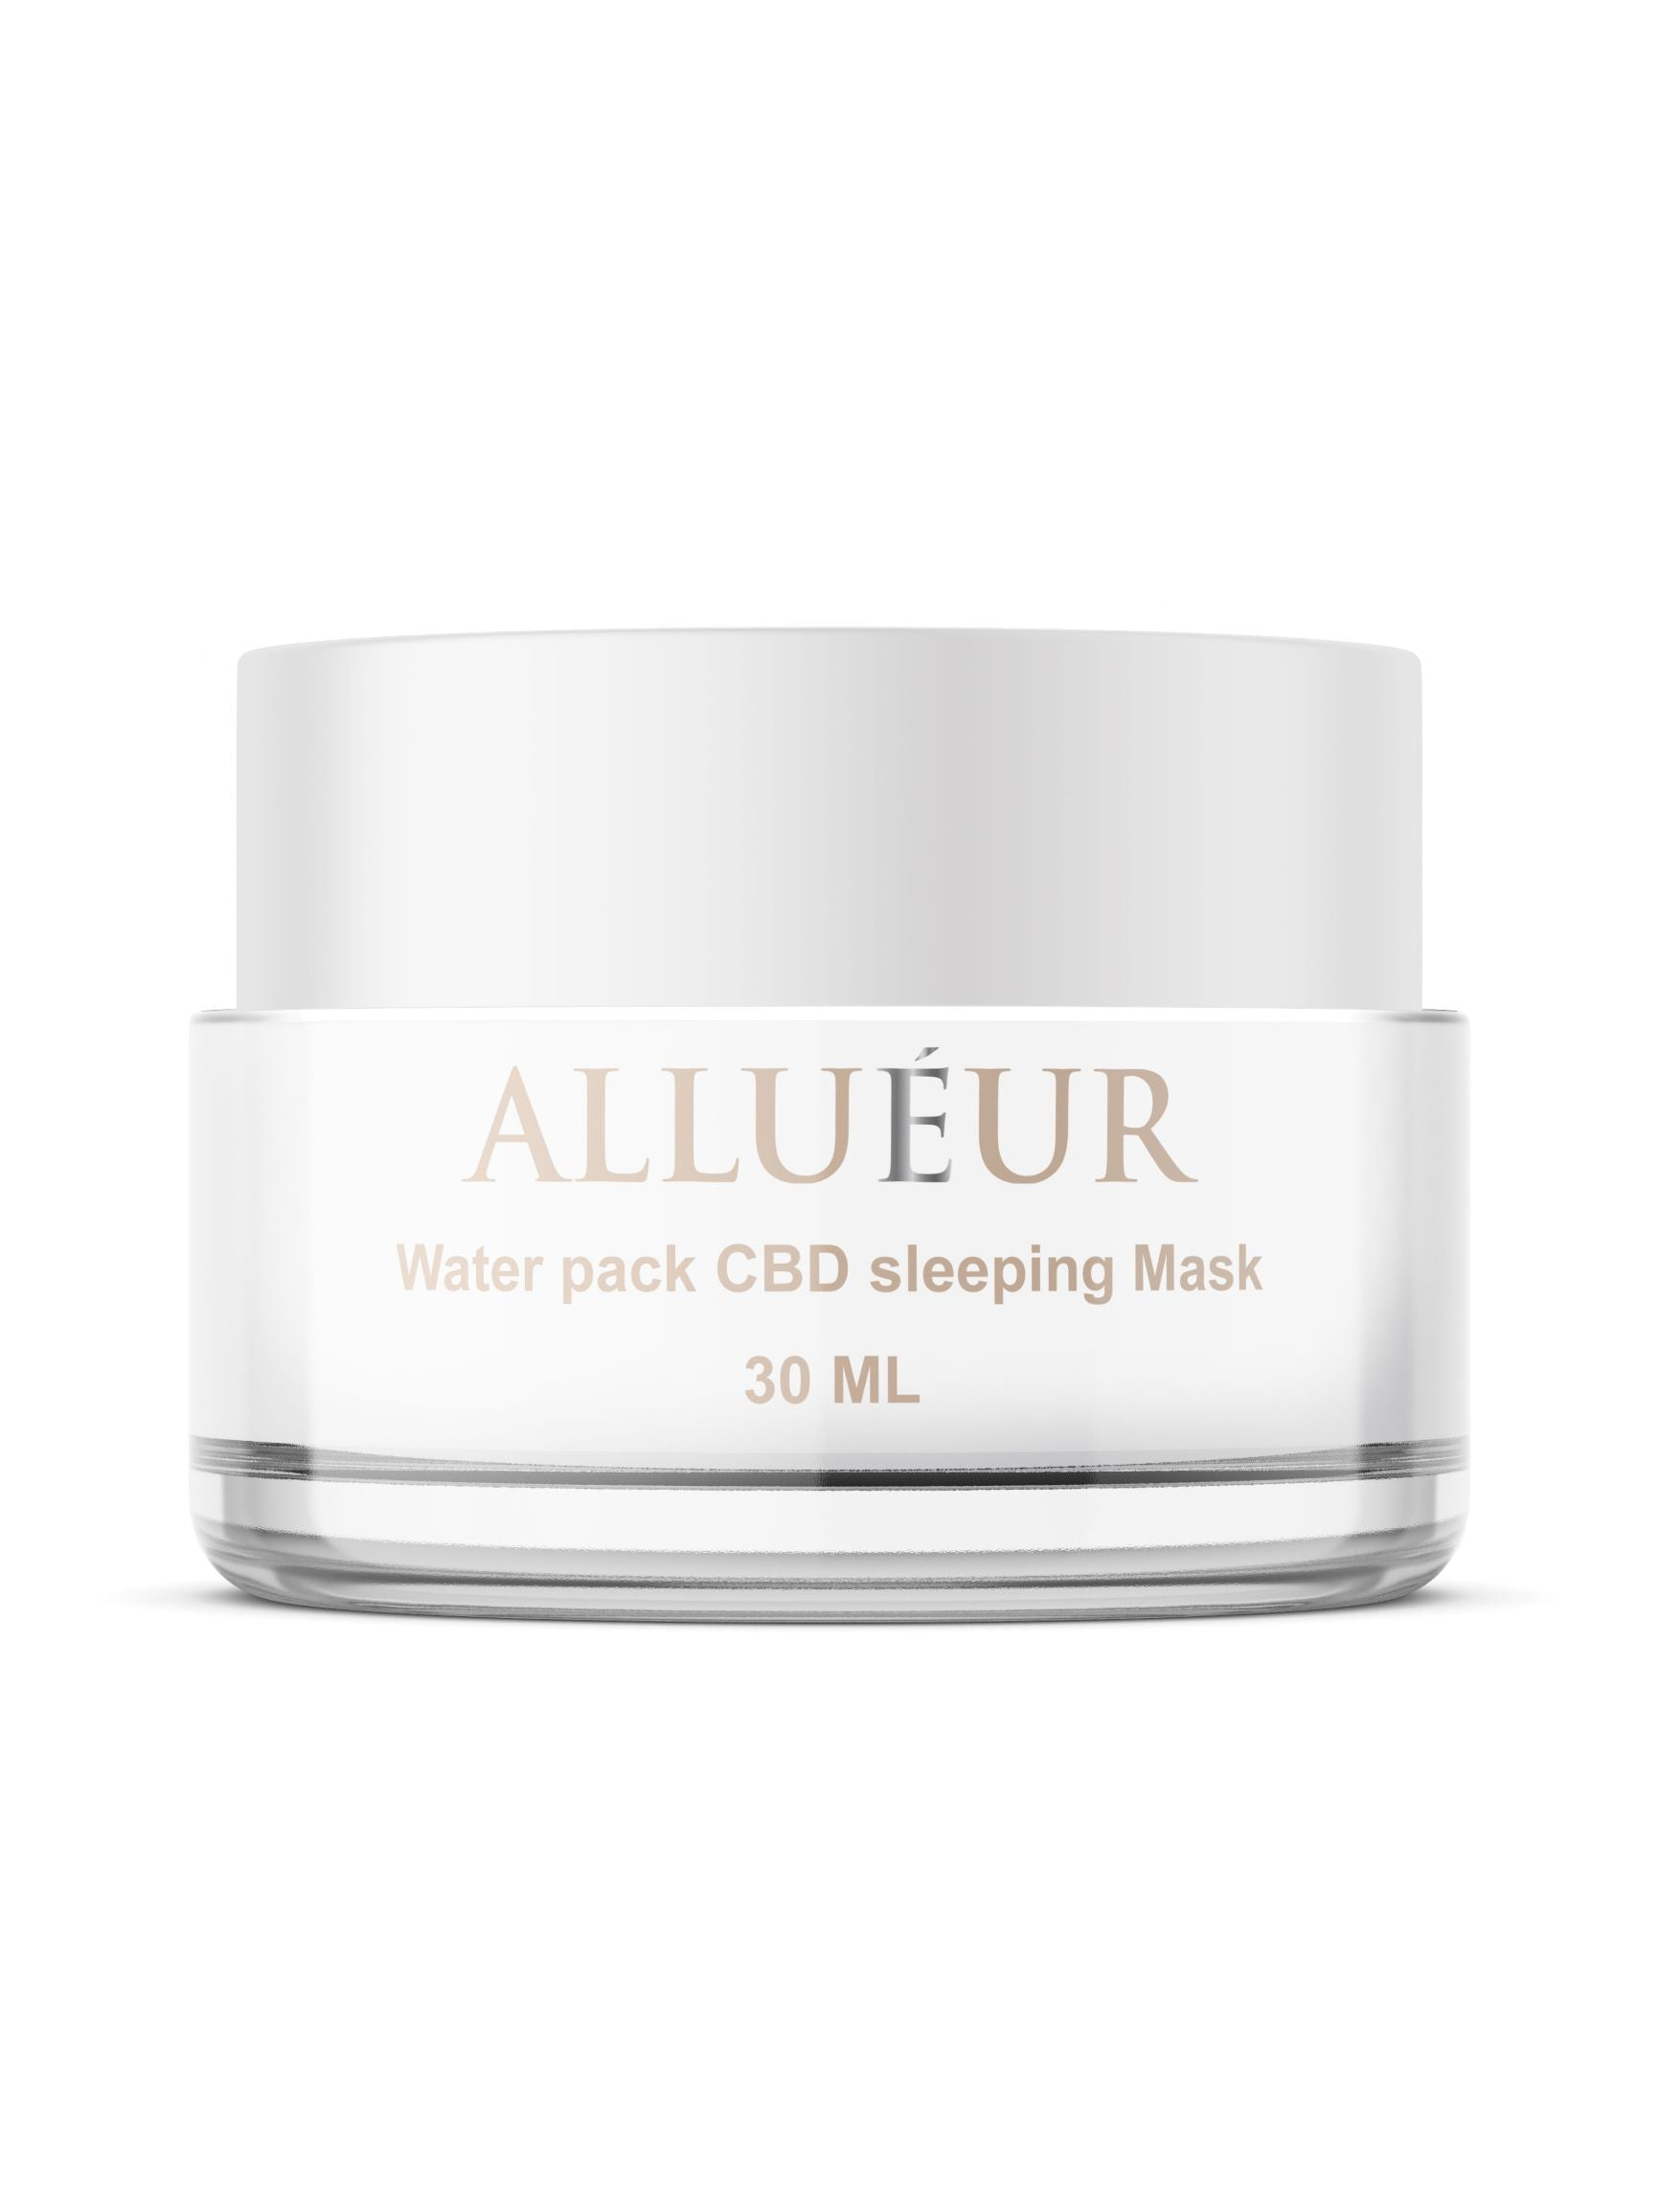 Allueur water pack cbd sleeping mask 30 ml